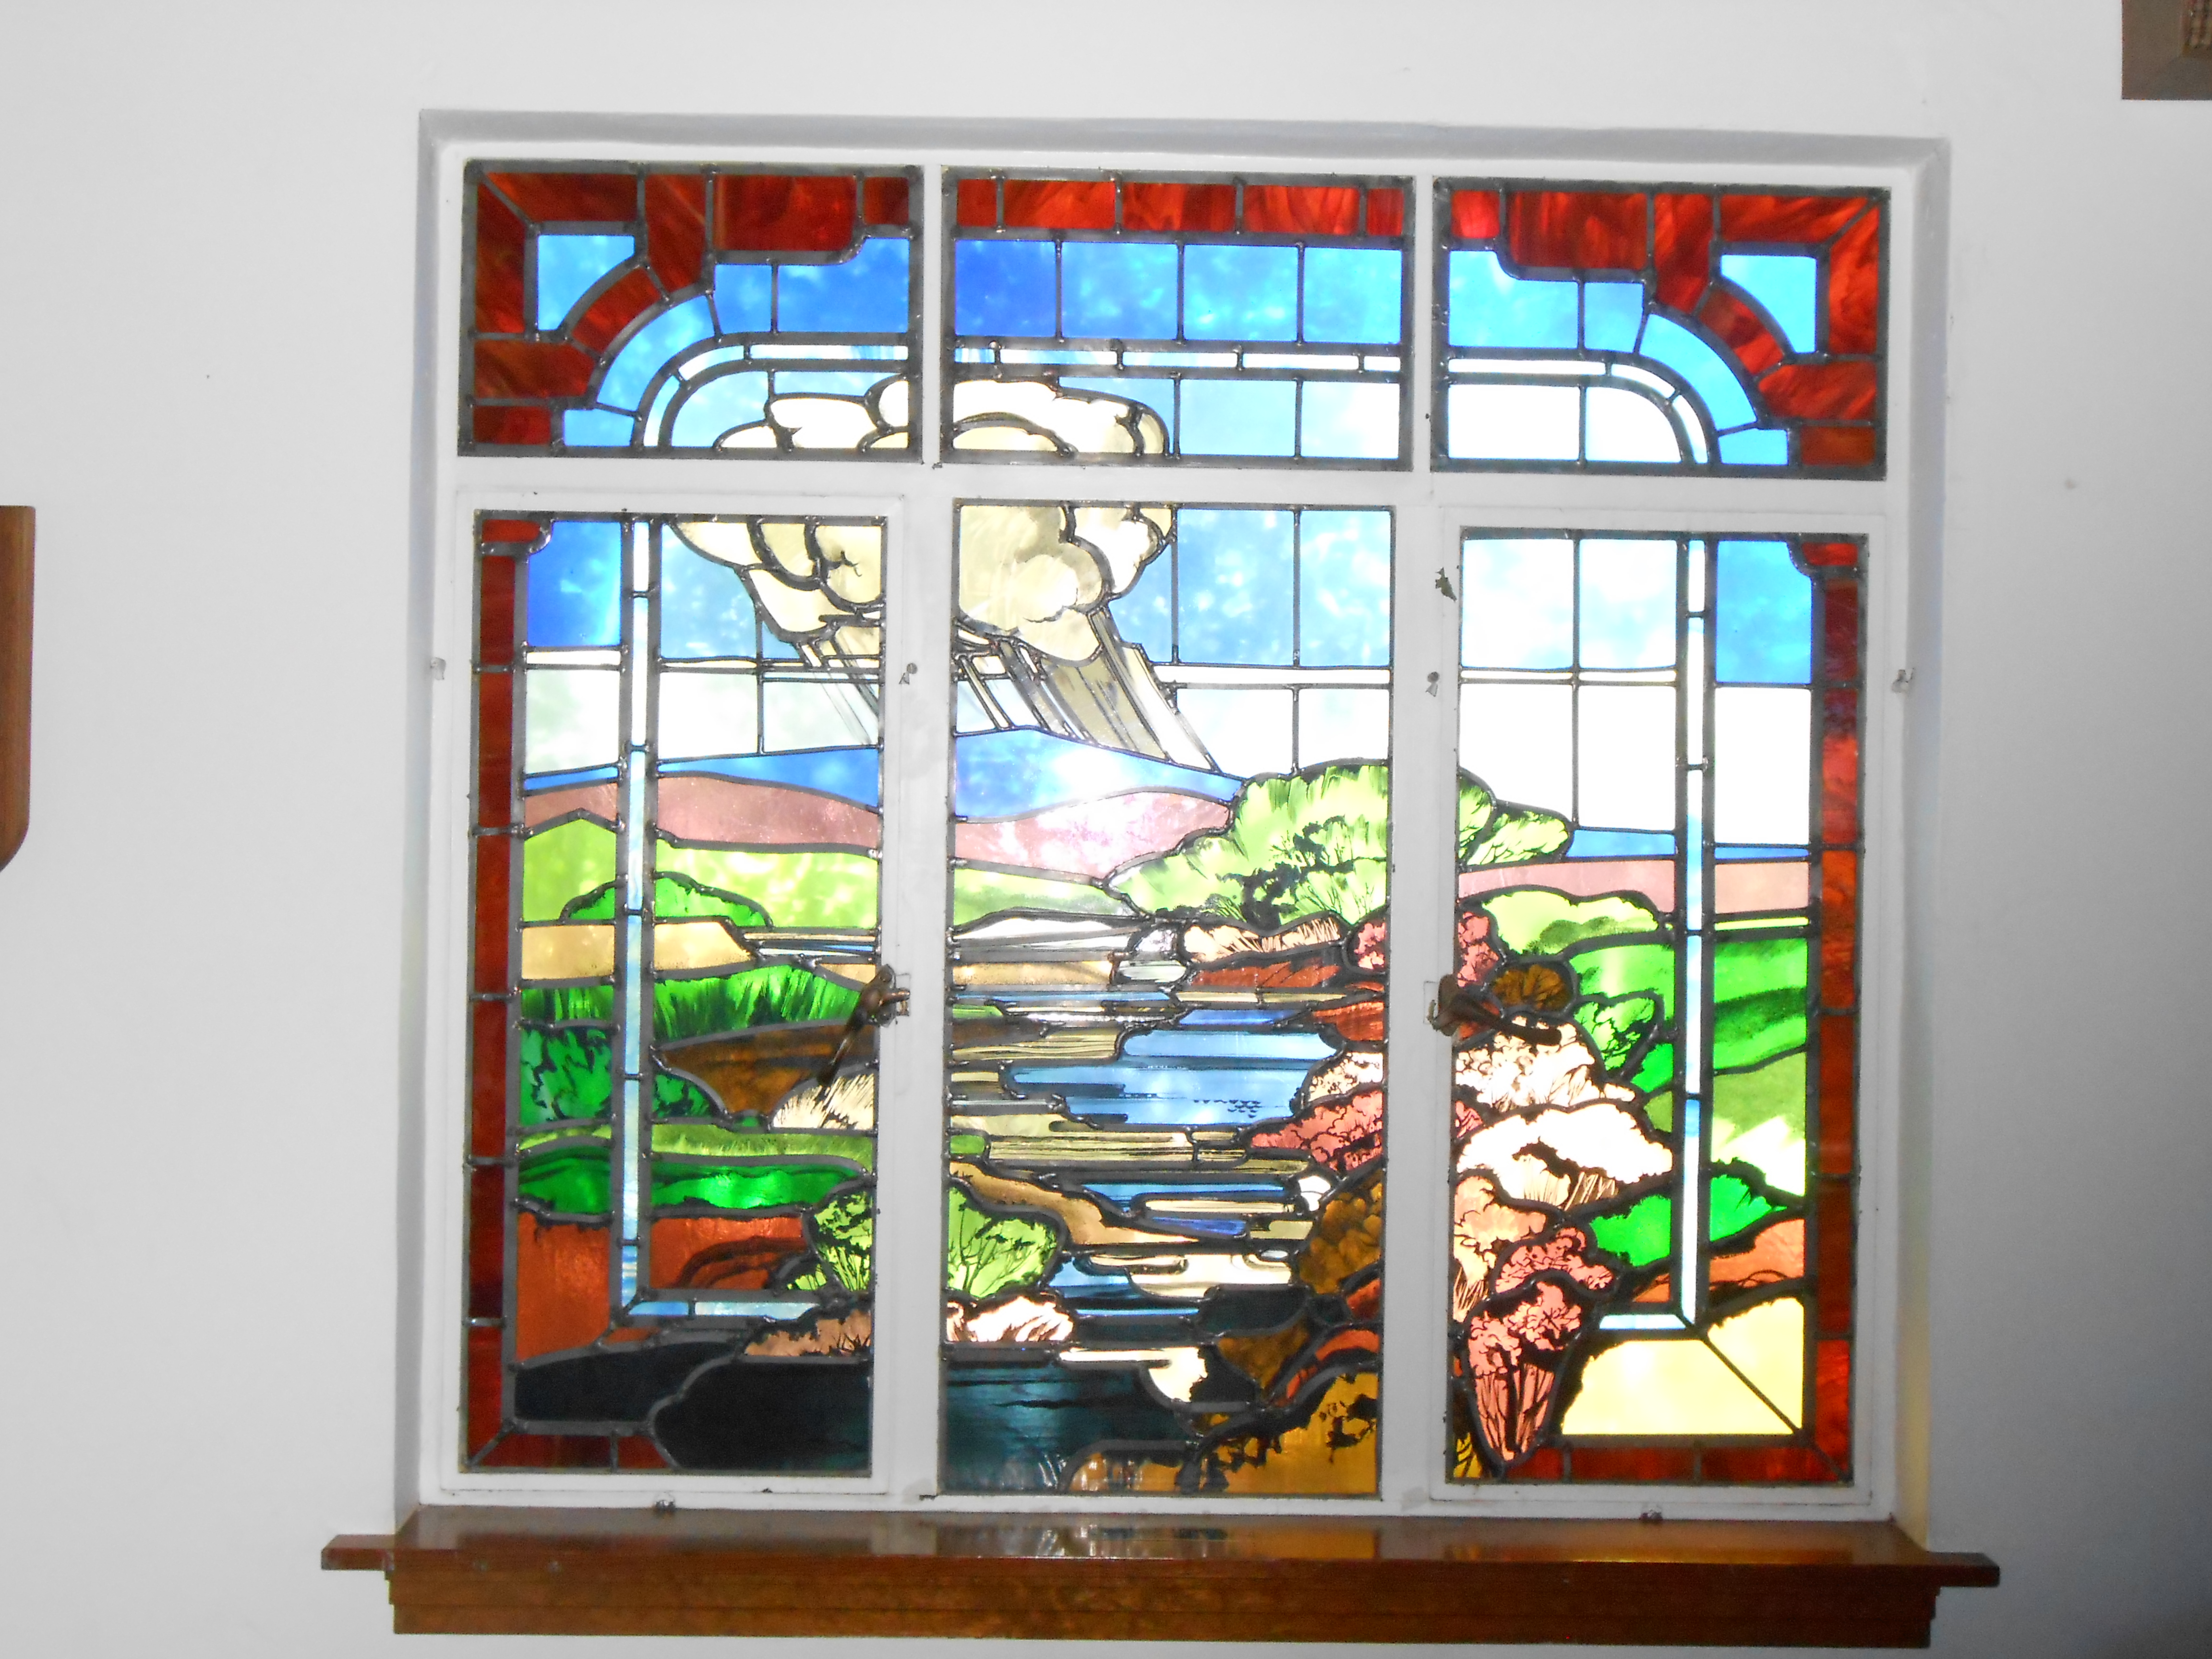 Stained Glass at Valley Community Church - Silver City, New Mexico